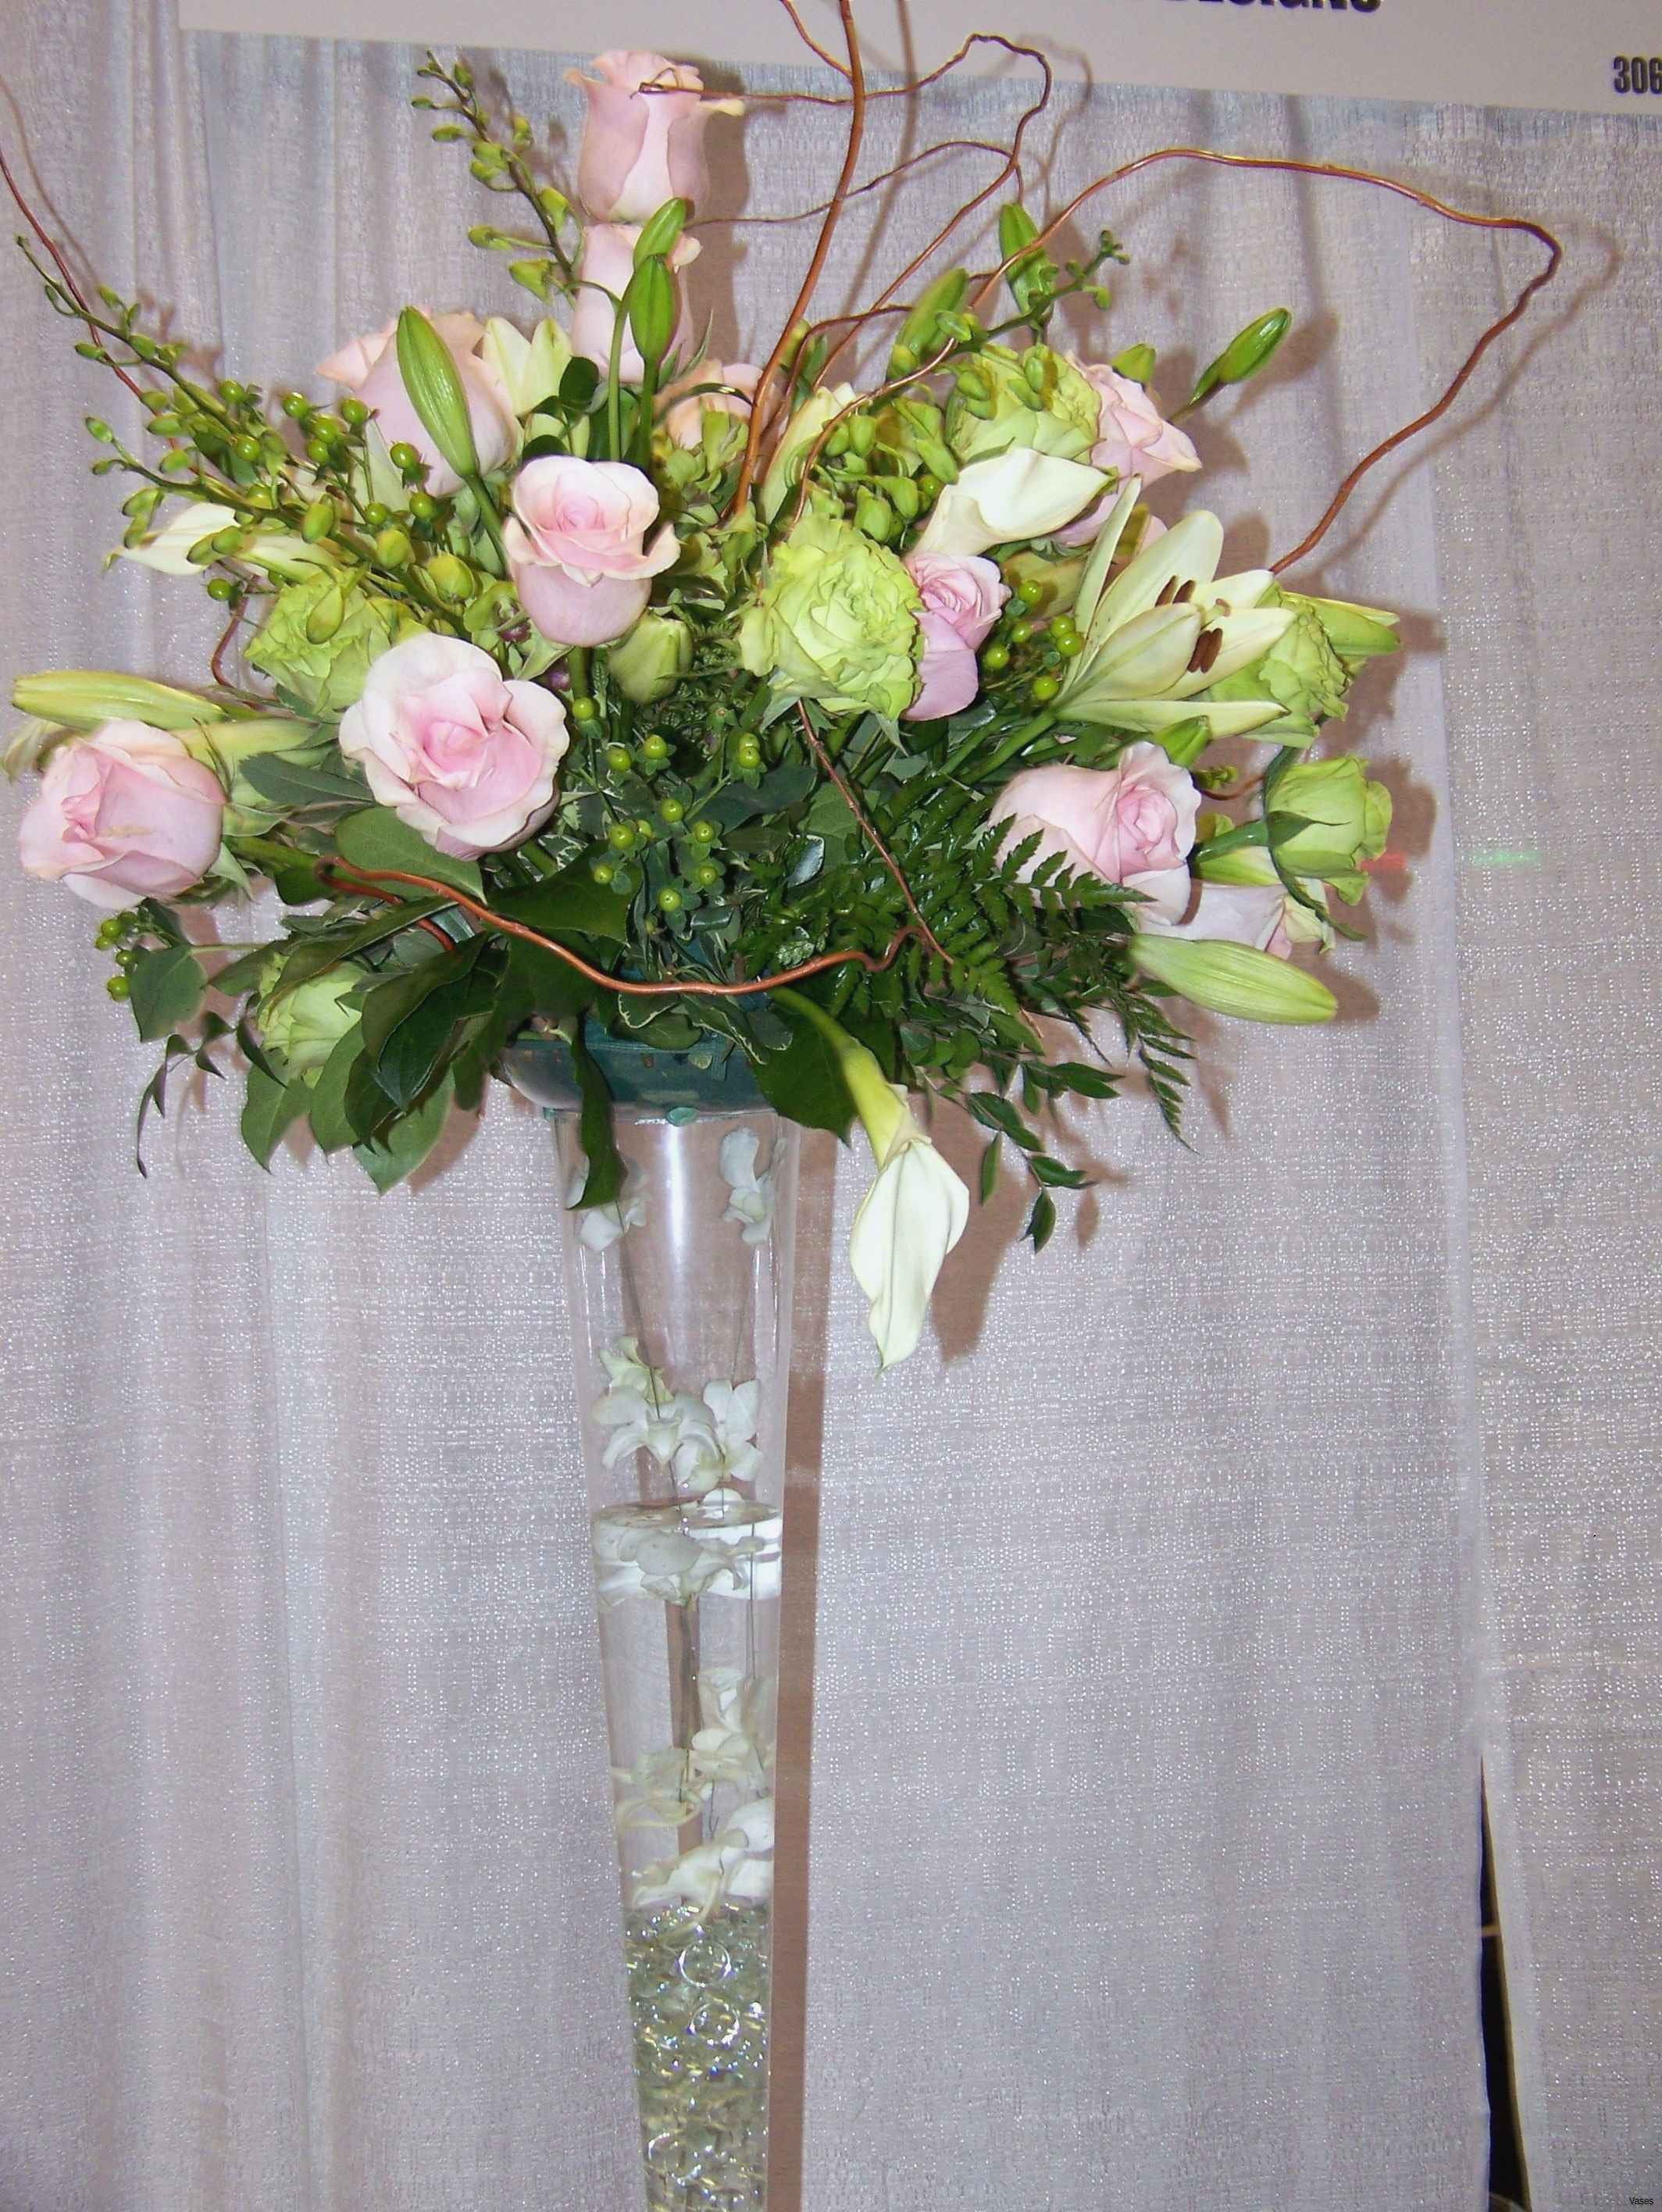 mexican wedding vase of elegant fall wedding bouquet wedding theme for h vases ideas for floral arrangements in i 0d design ideas design inspiration rustic fall